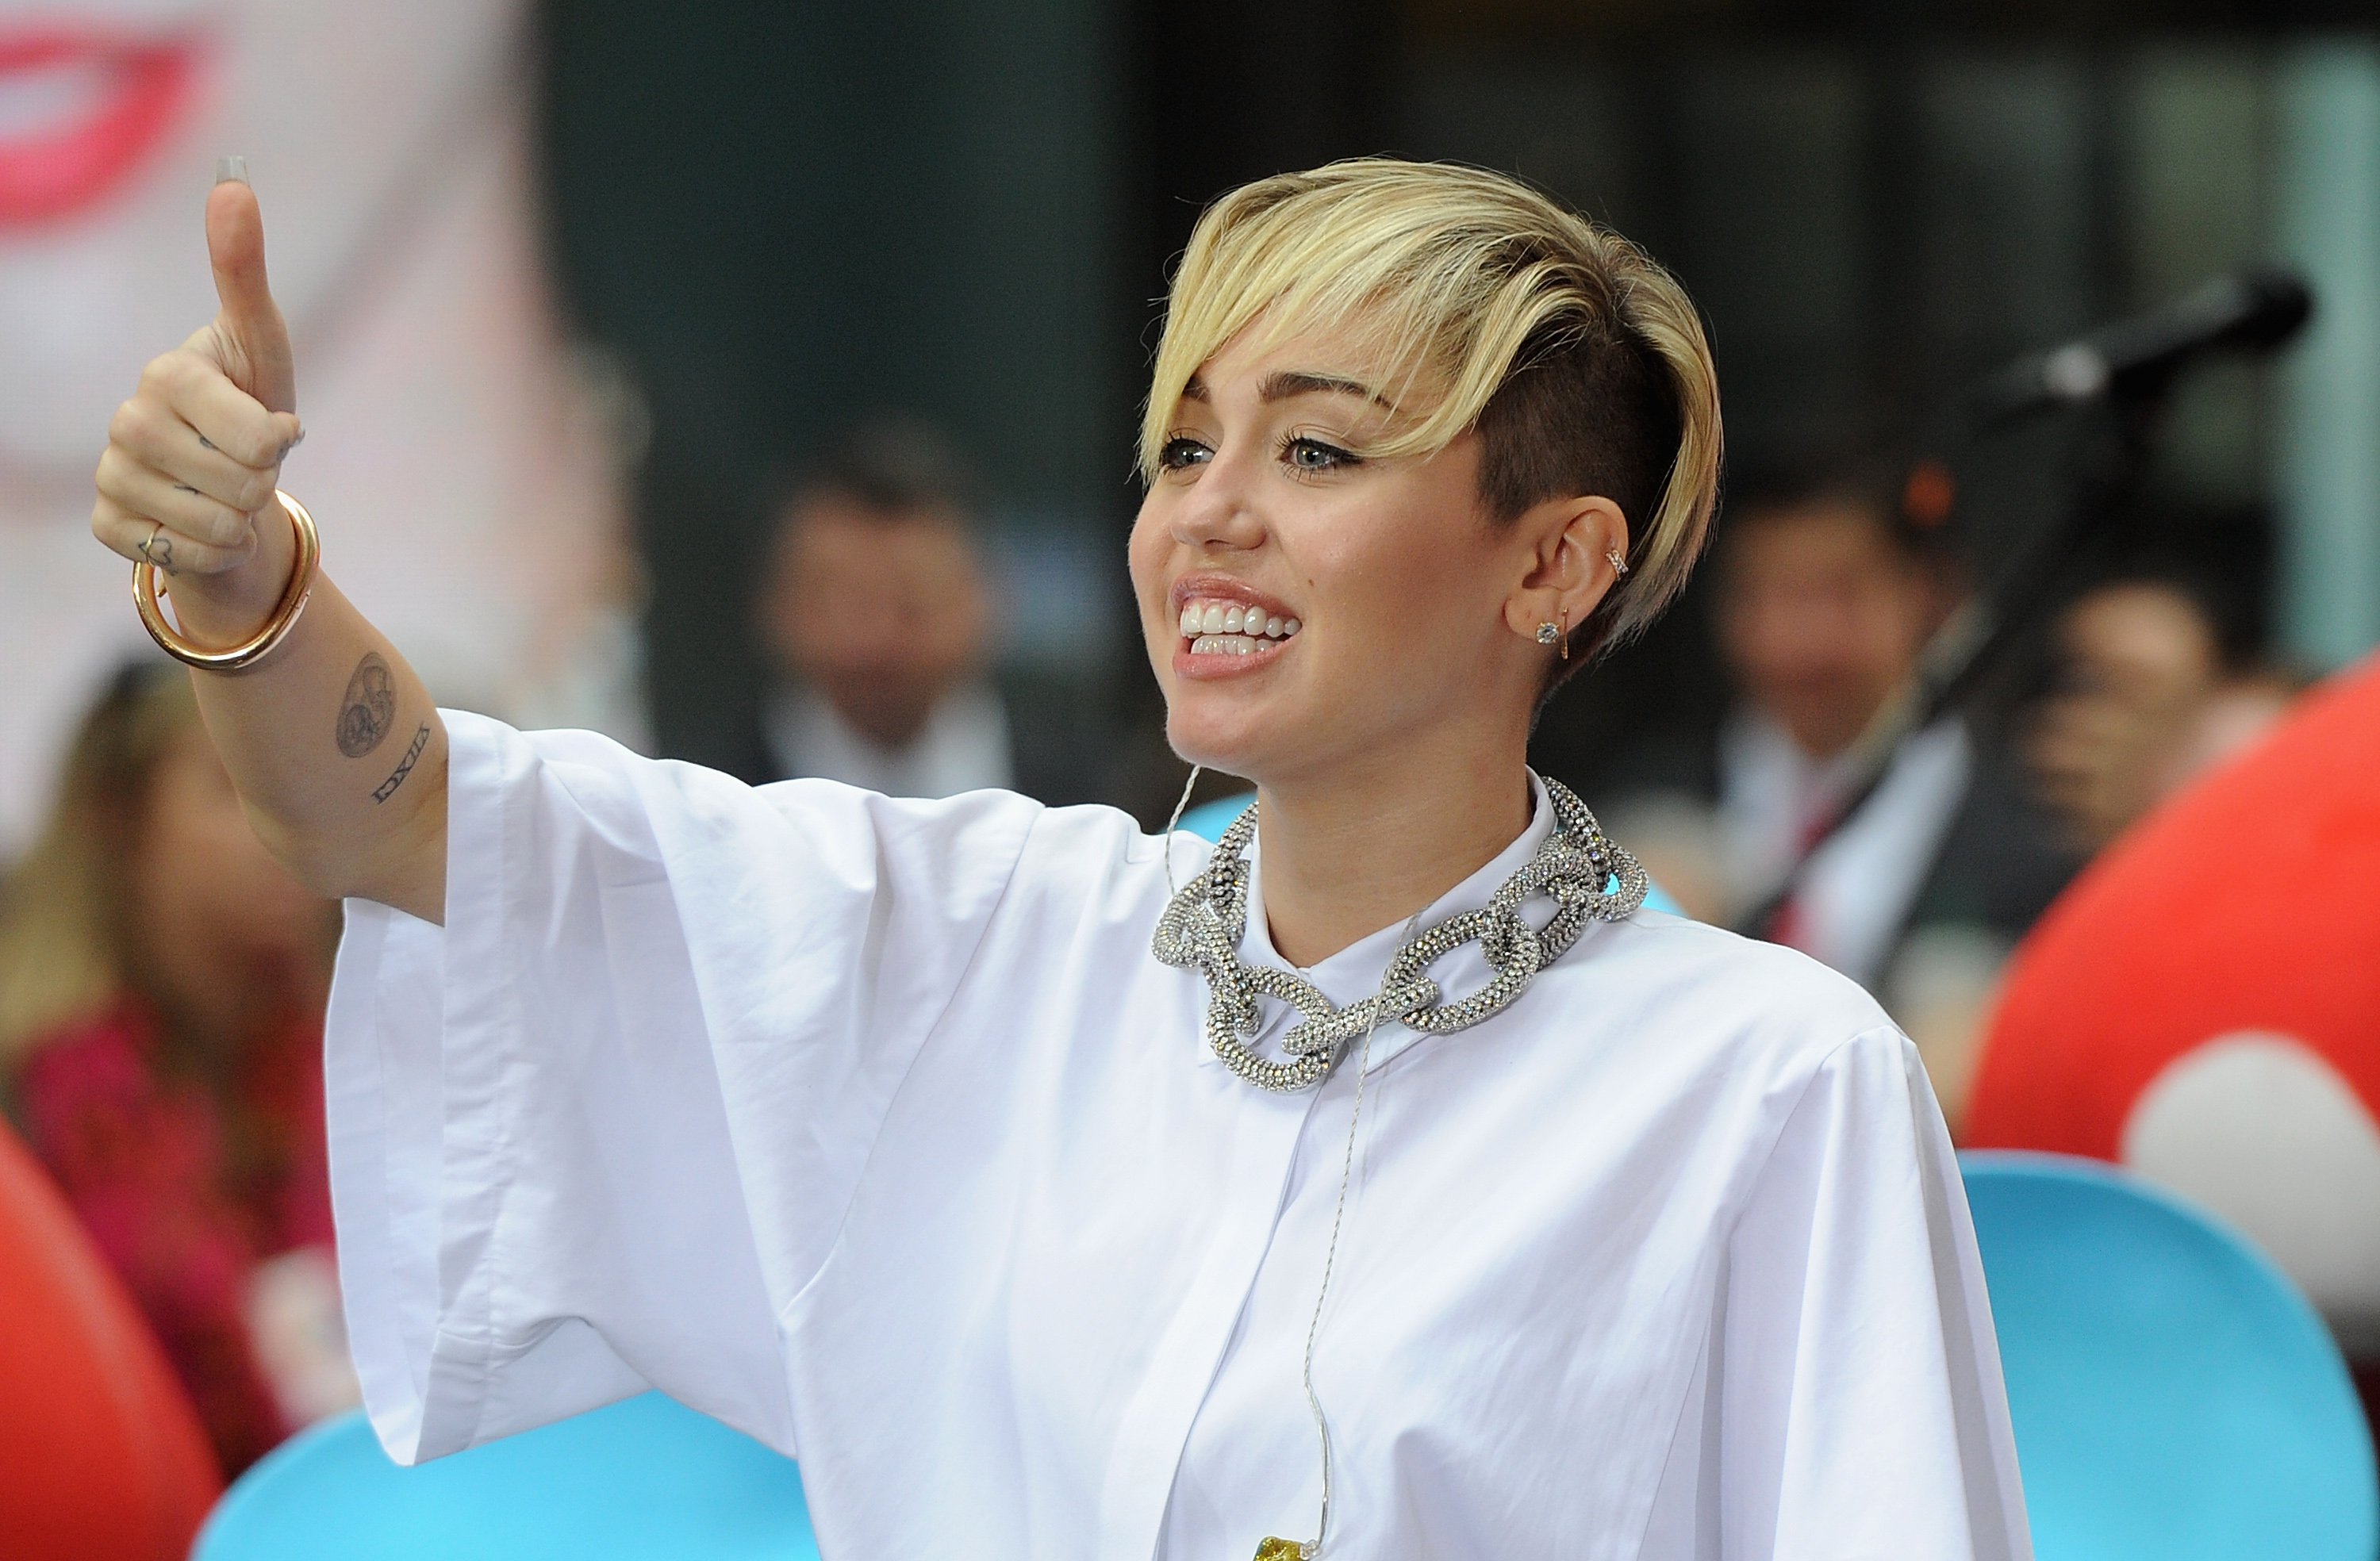 Miley Cyrus Performs On NBC's